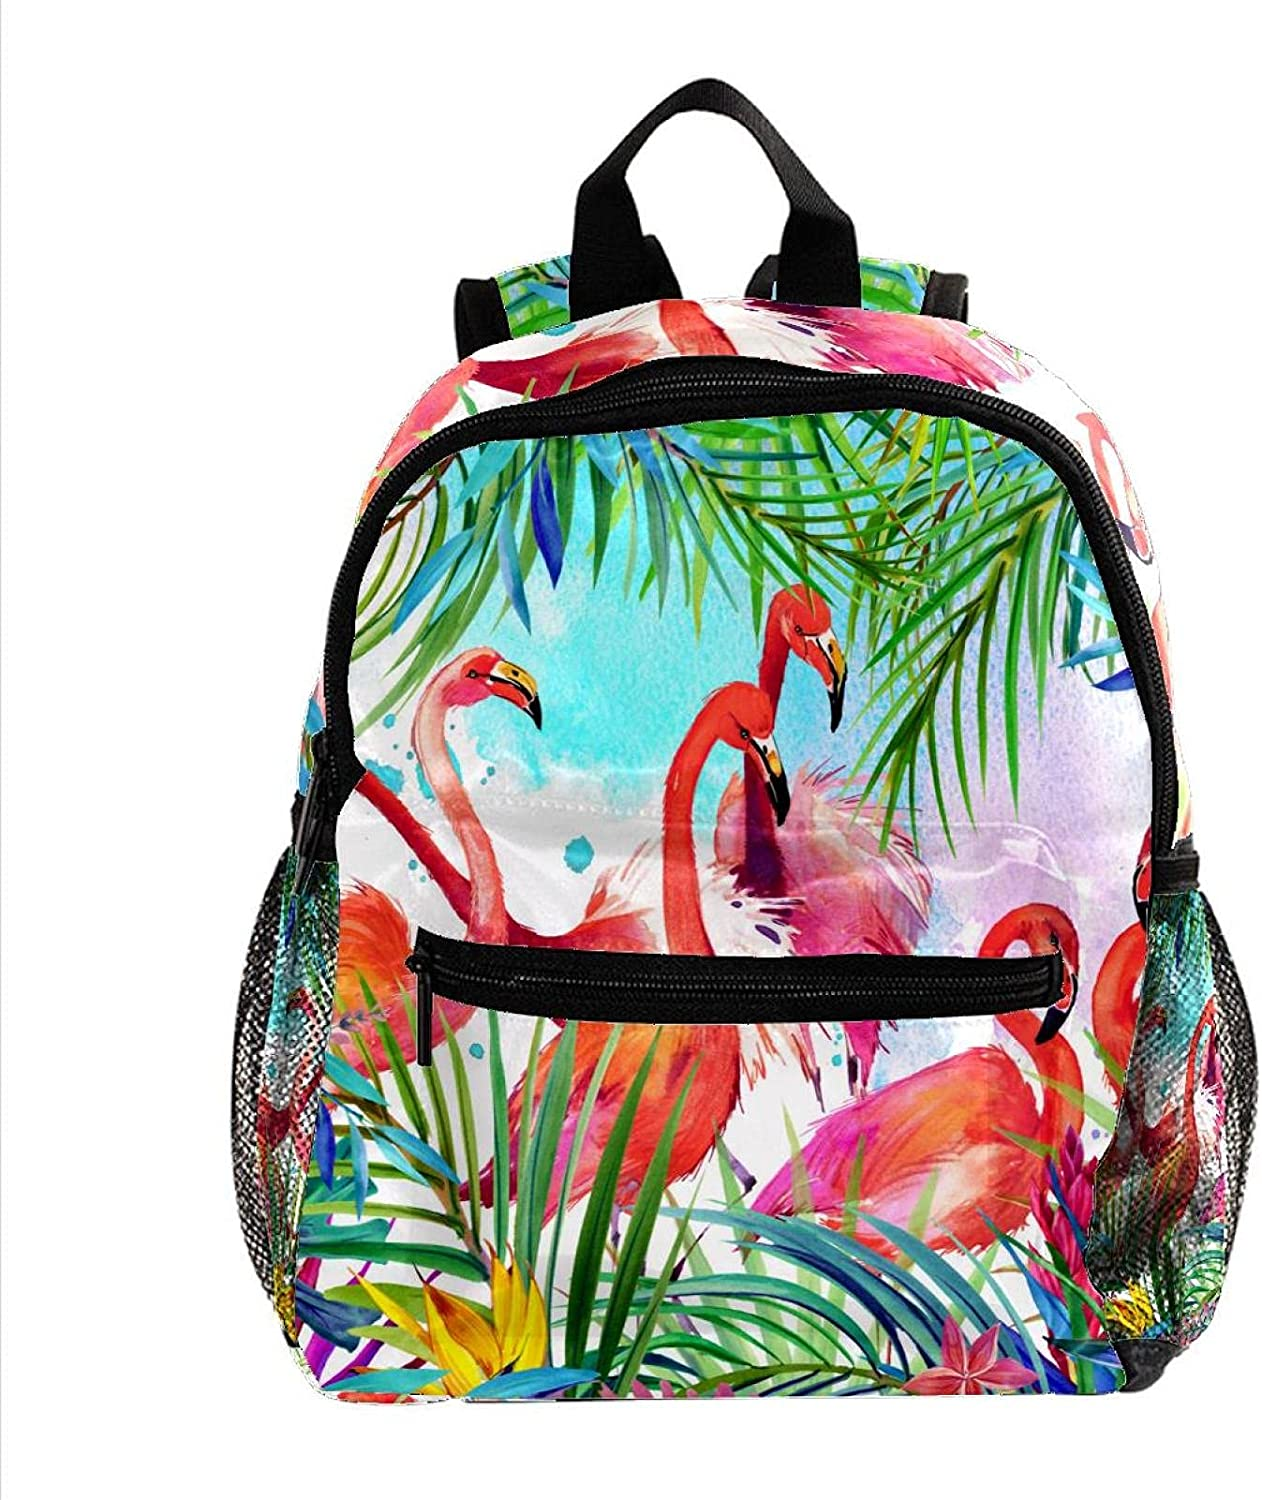 Small Backpack OFFicial store for Girls Boy Outdoor Bag tro Las Vegas Mall Daypack Travel Walk